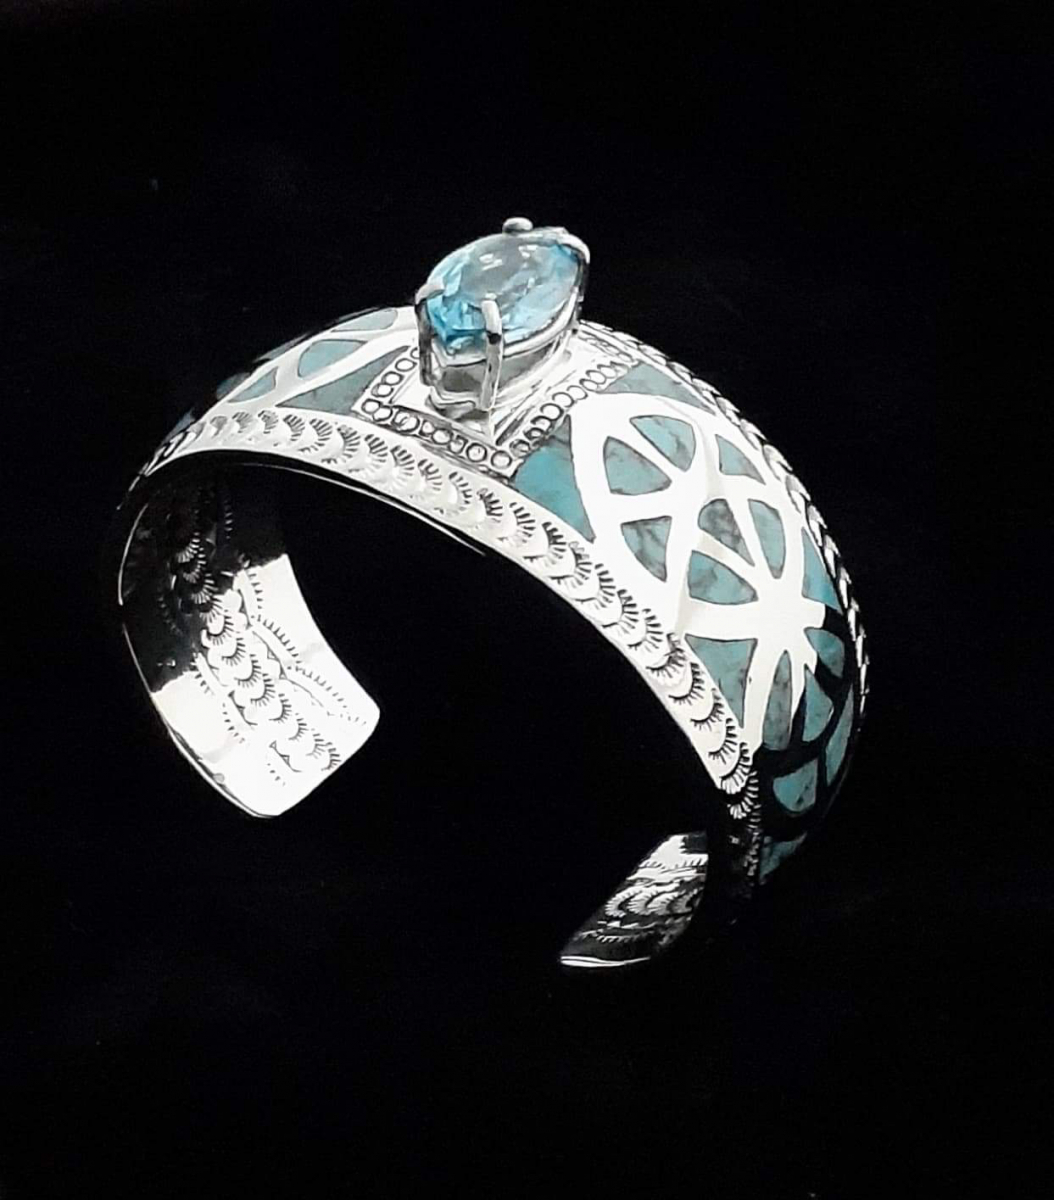 Blue Topaz Center Stone and Turquoise Inlay with Stampwork Inside and Out